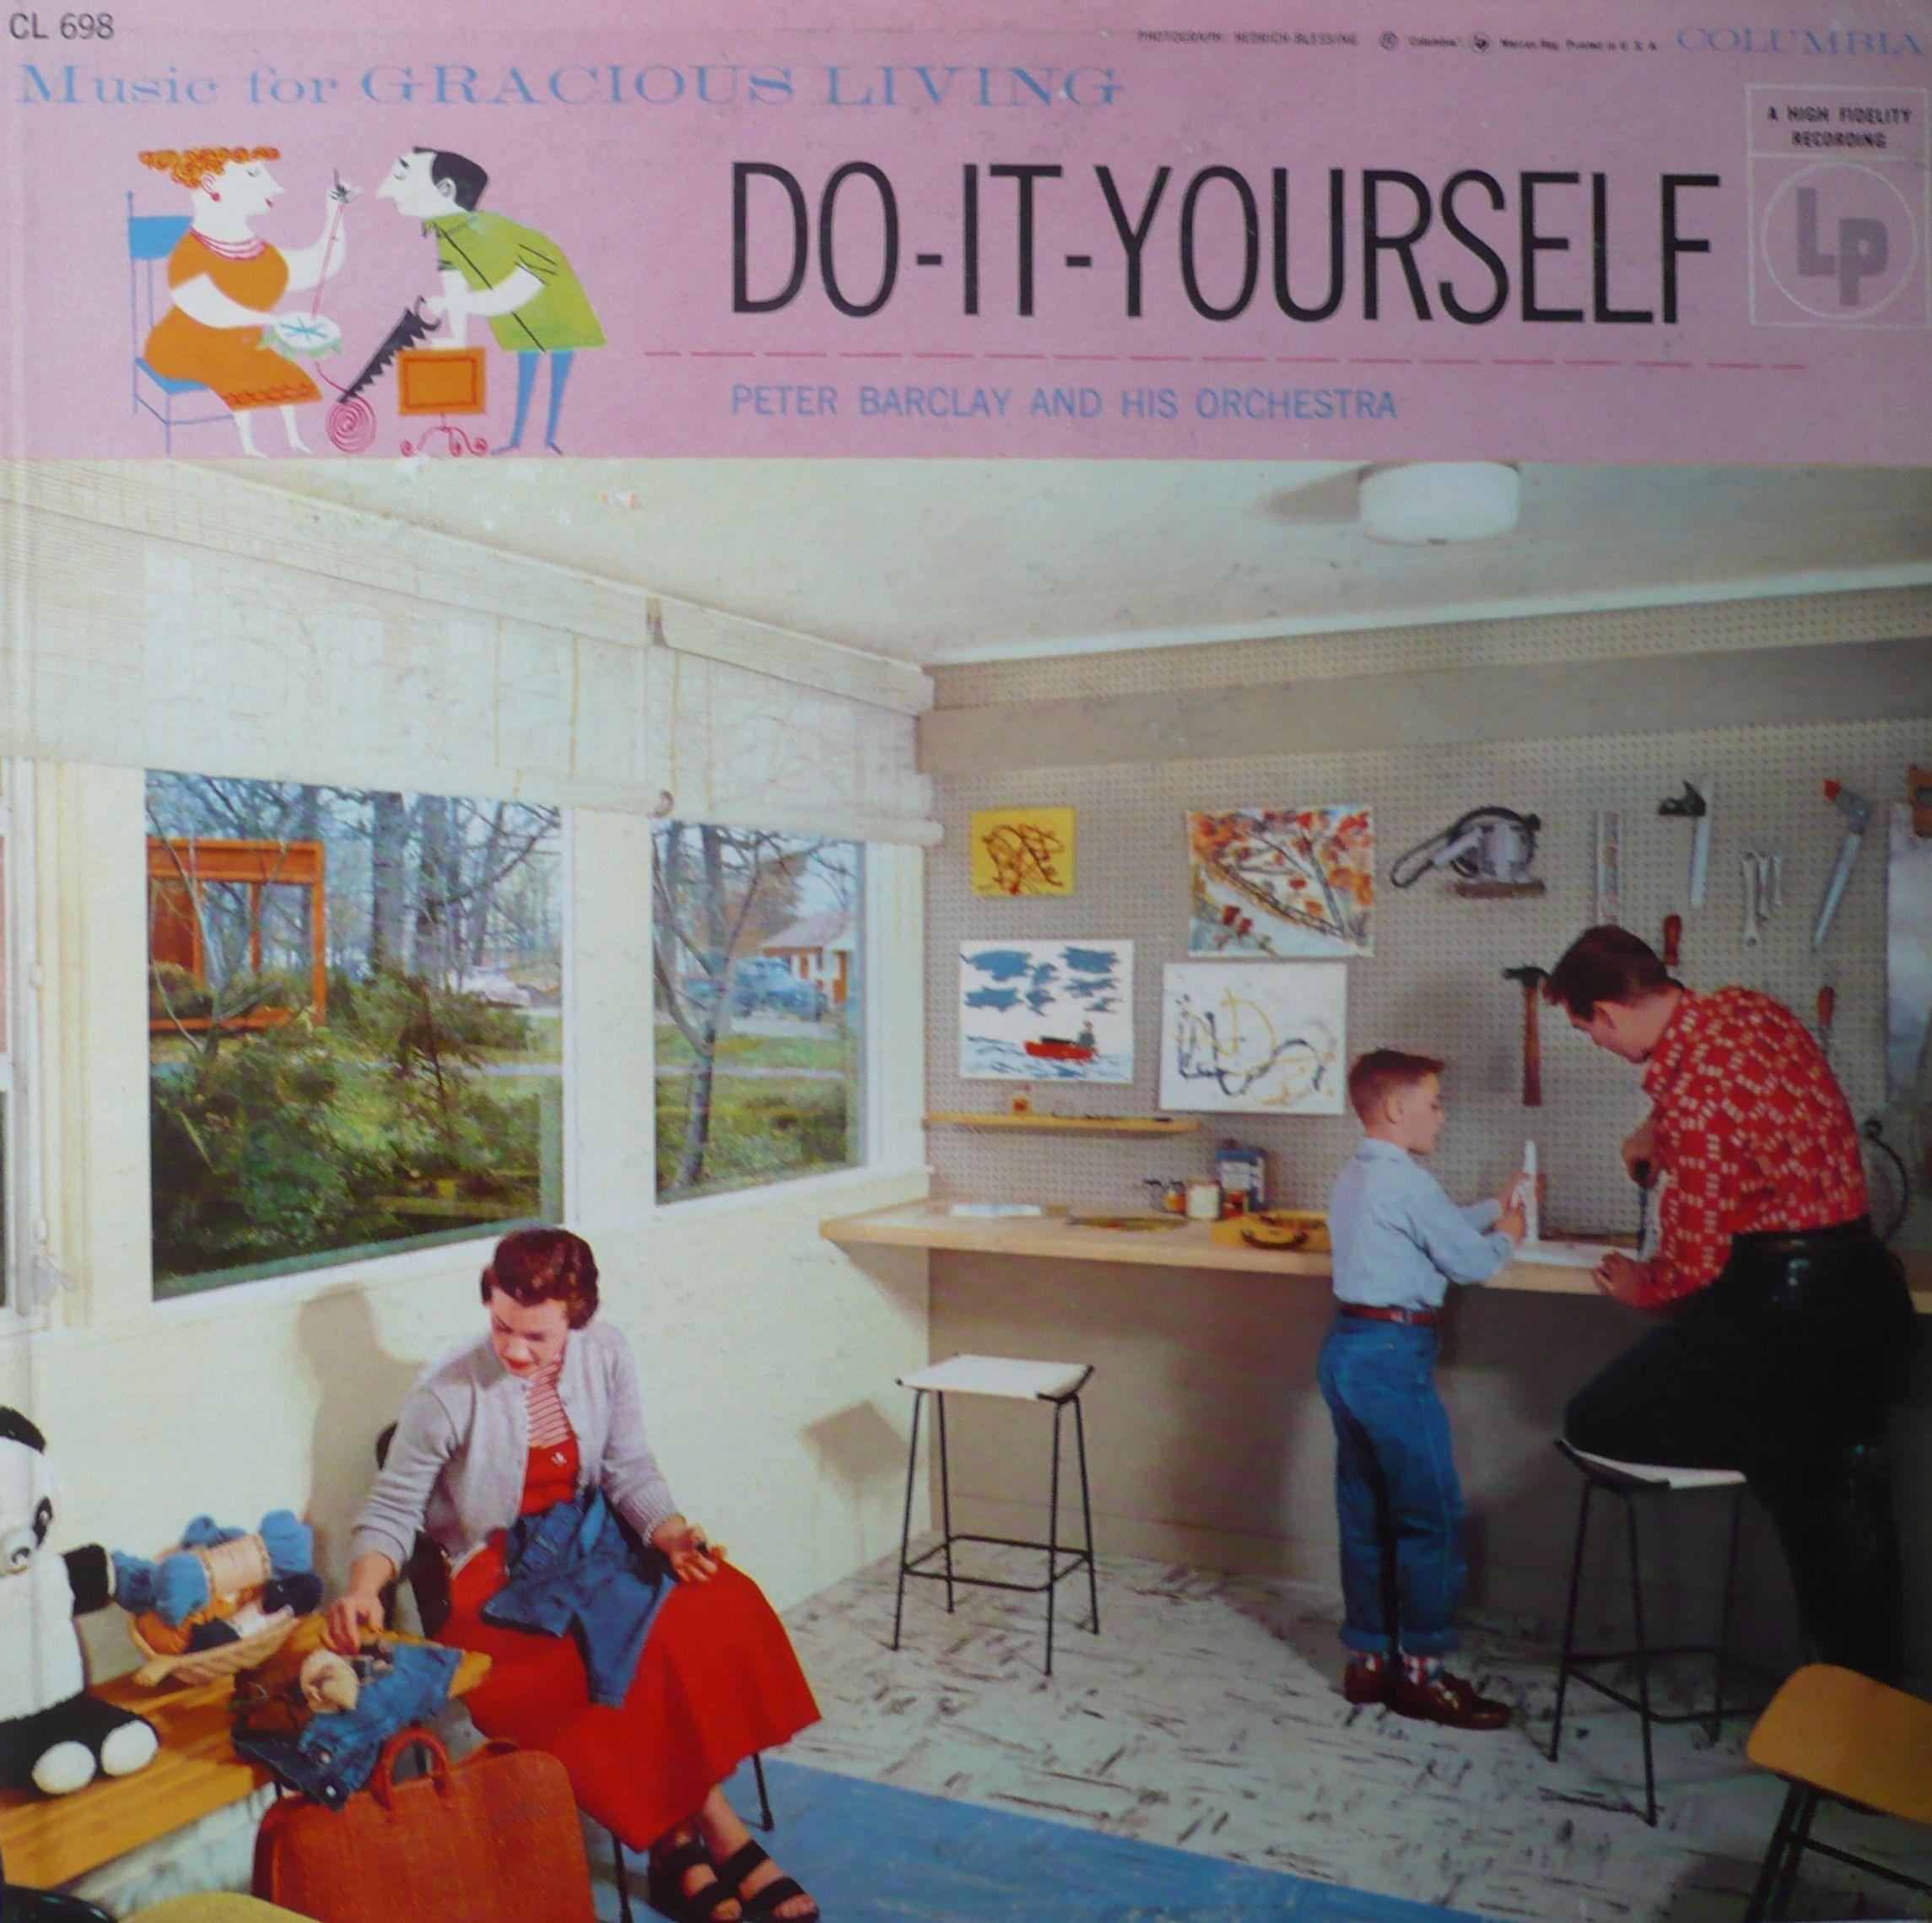 Music for gracious living do it yourself peter barclay and his music for gracious living do it yourself peter barclay and his orchestra 1956 solutioingenieria Gallery